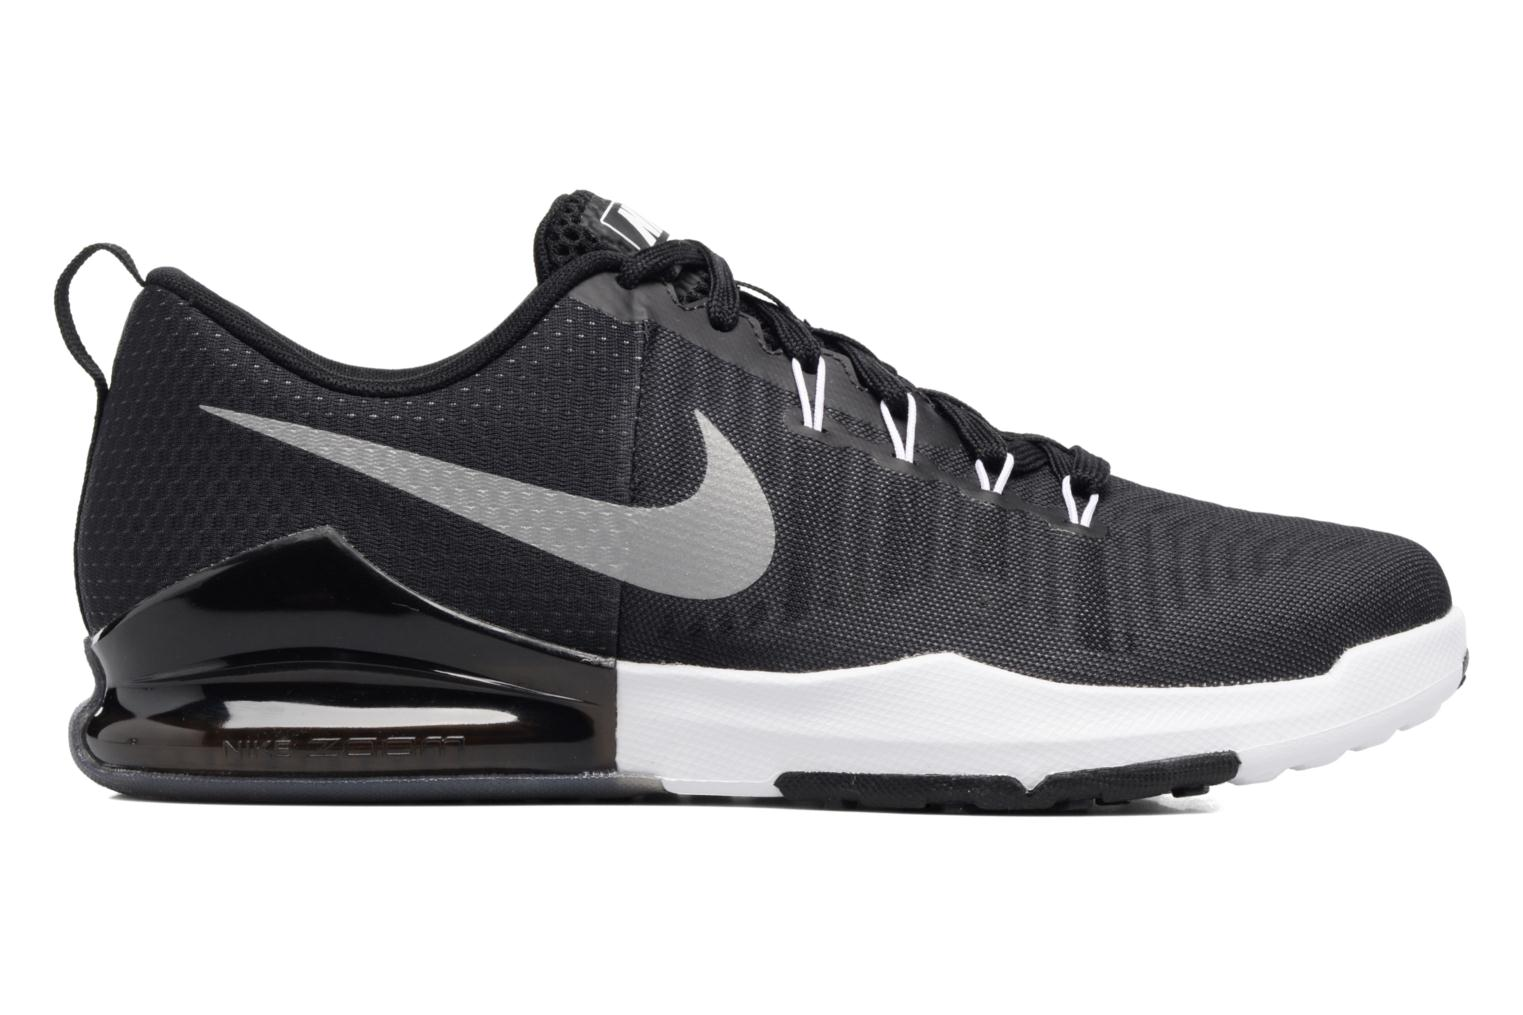 Zapatillas de deporte Nike Nike Zoom Train Action Negro vistra trasera